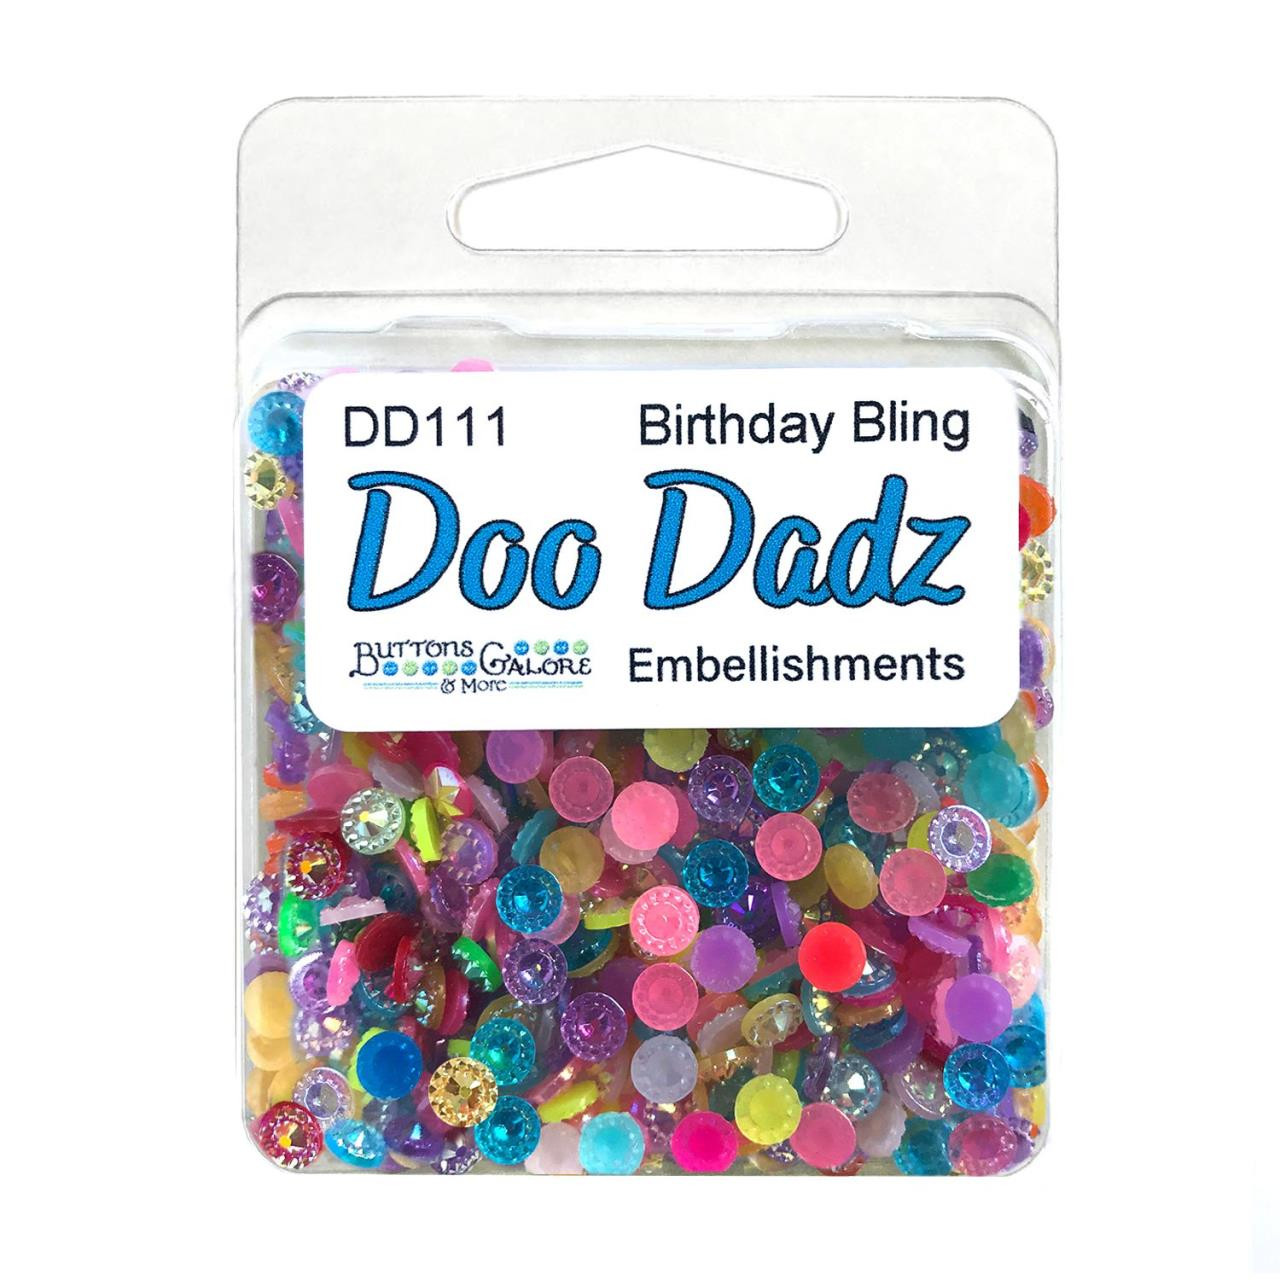 Birthday Bling, Buttons Galore Doo Dadz -